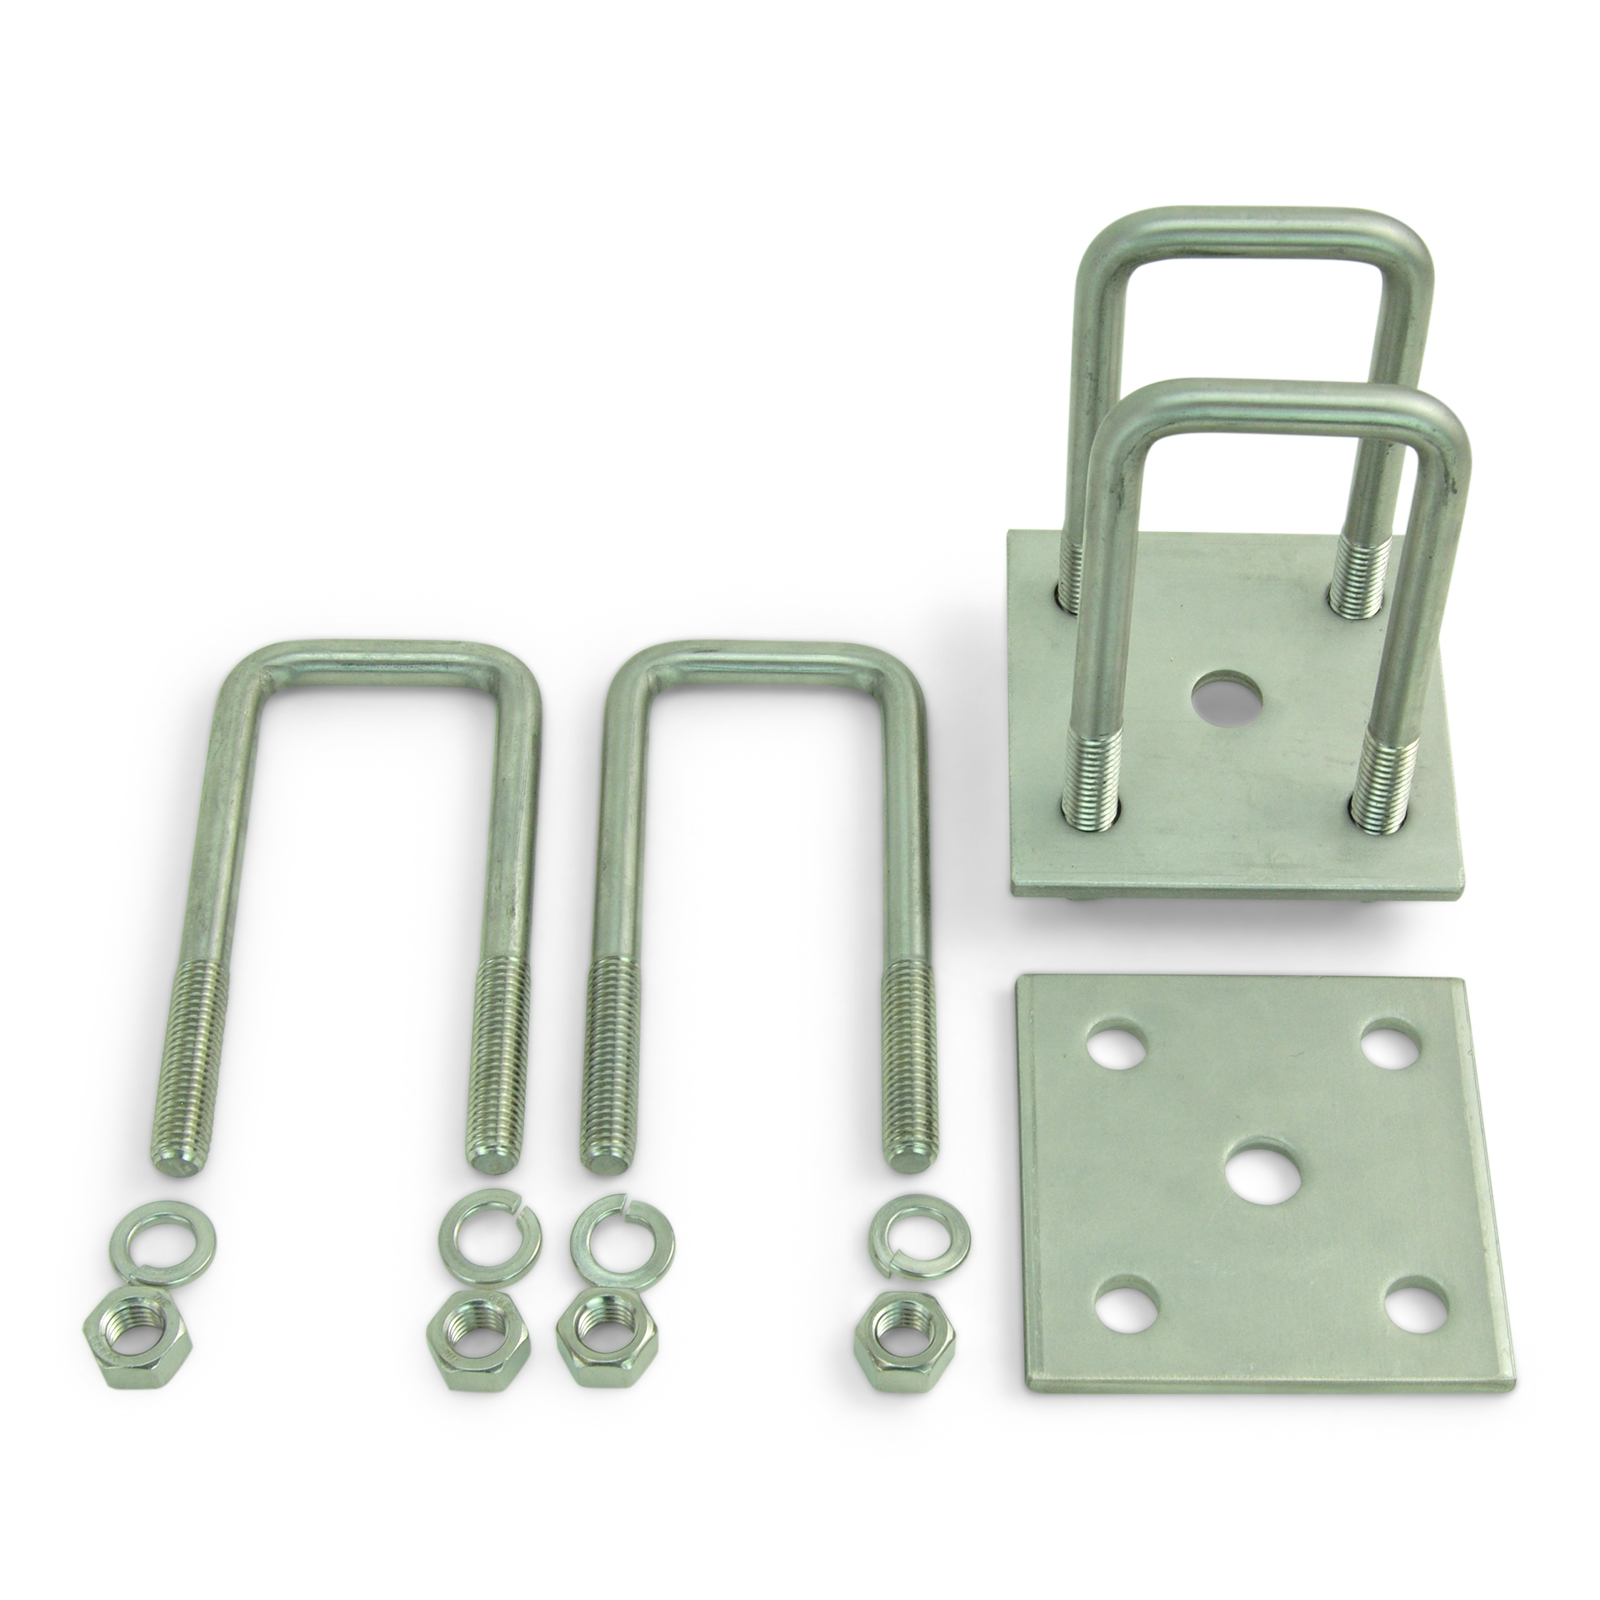 Boat Trailer Leaf Spring Mounting Bolts 9//16 in x 3 1//2 inch Stainless Steel 6